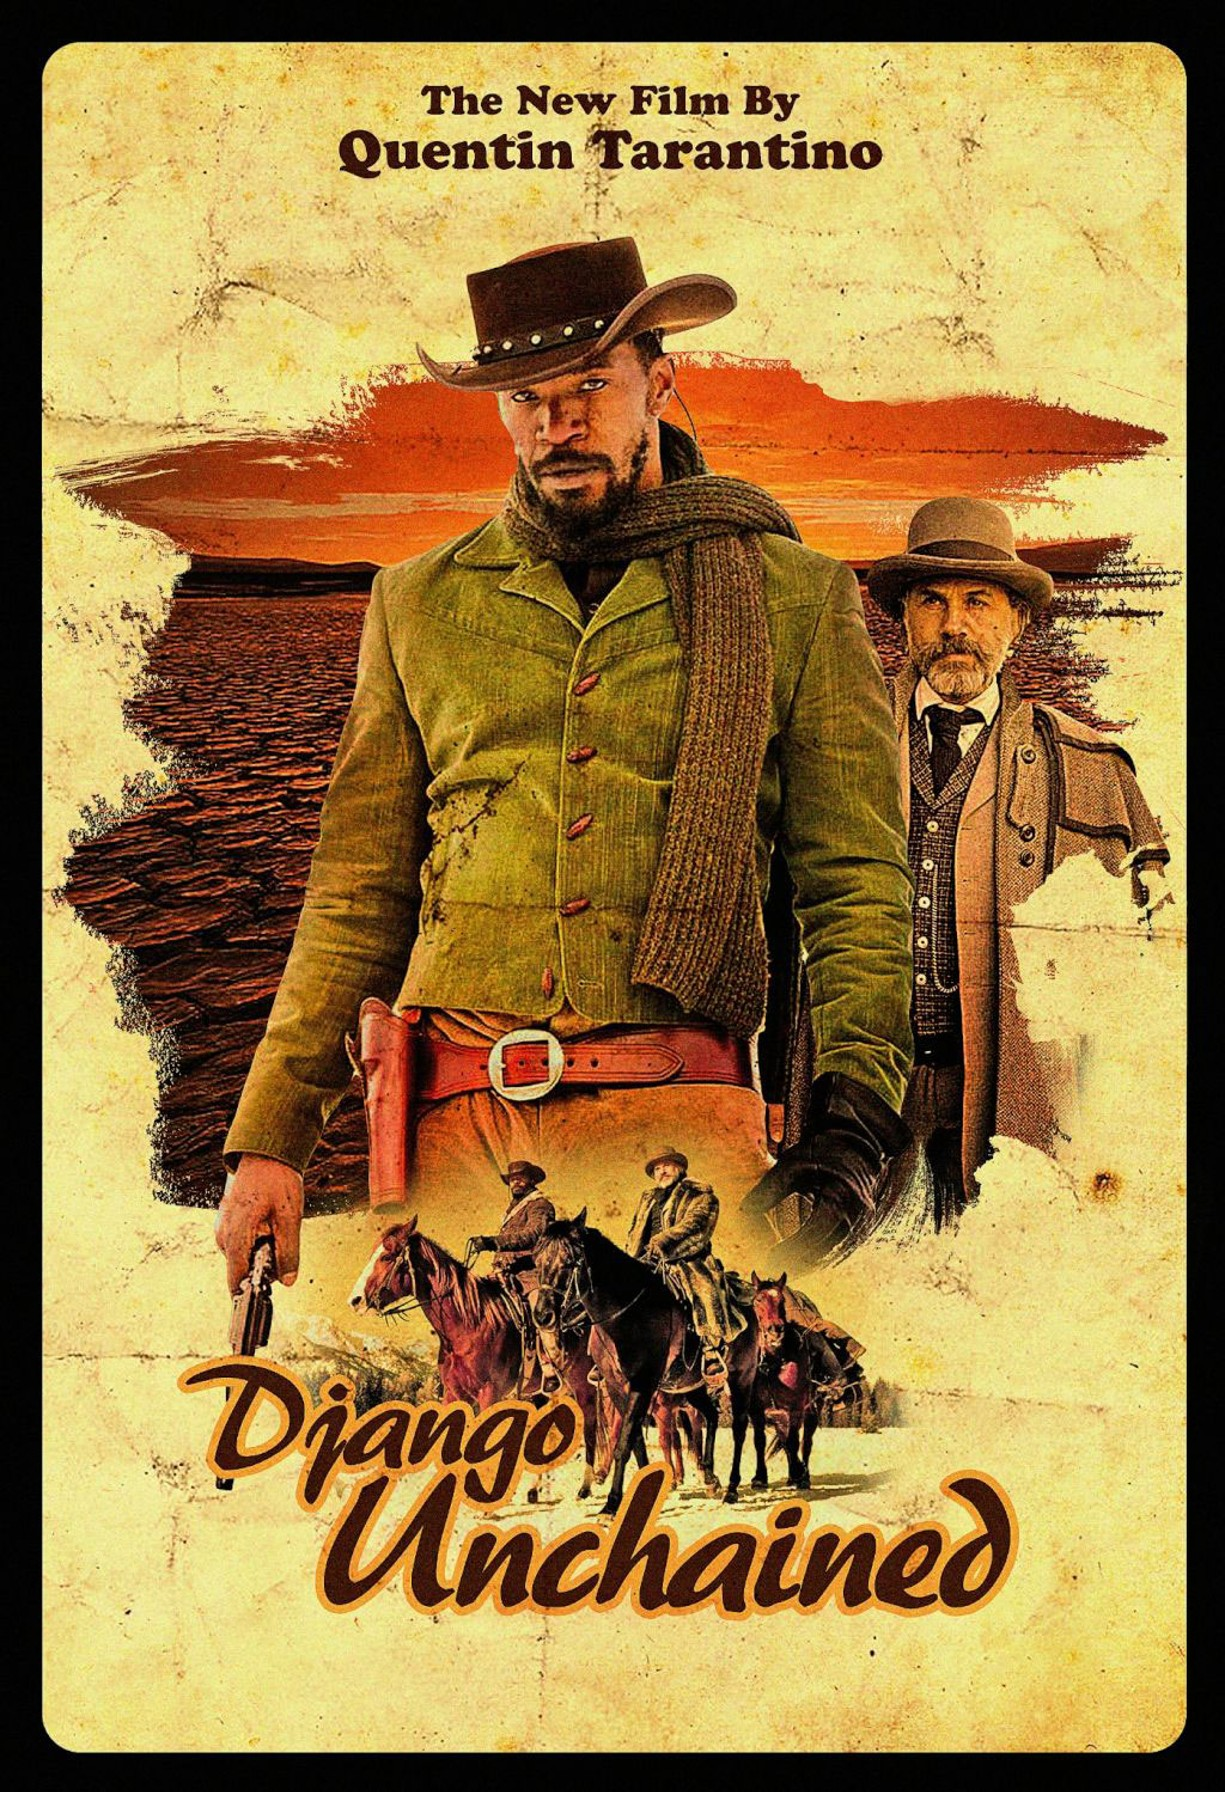 django unchained by quentin tarantino In 20 years of making films writer/director quentin tarantino has created an alternate universe on screen here's how his latest film -- django unchained -- fits into it.